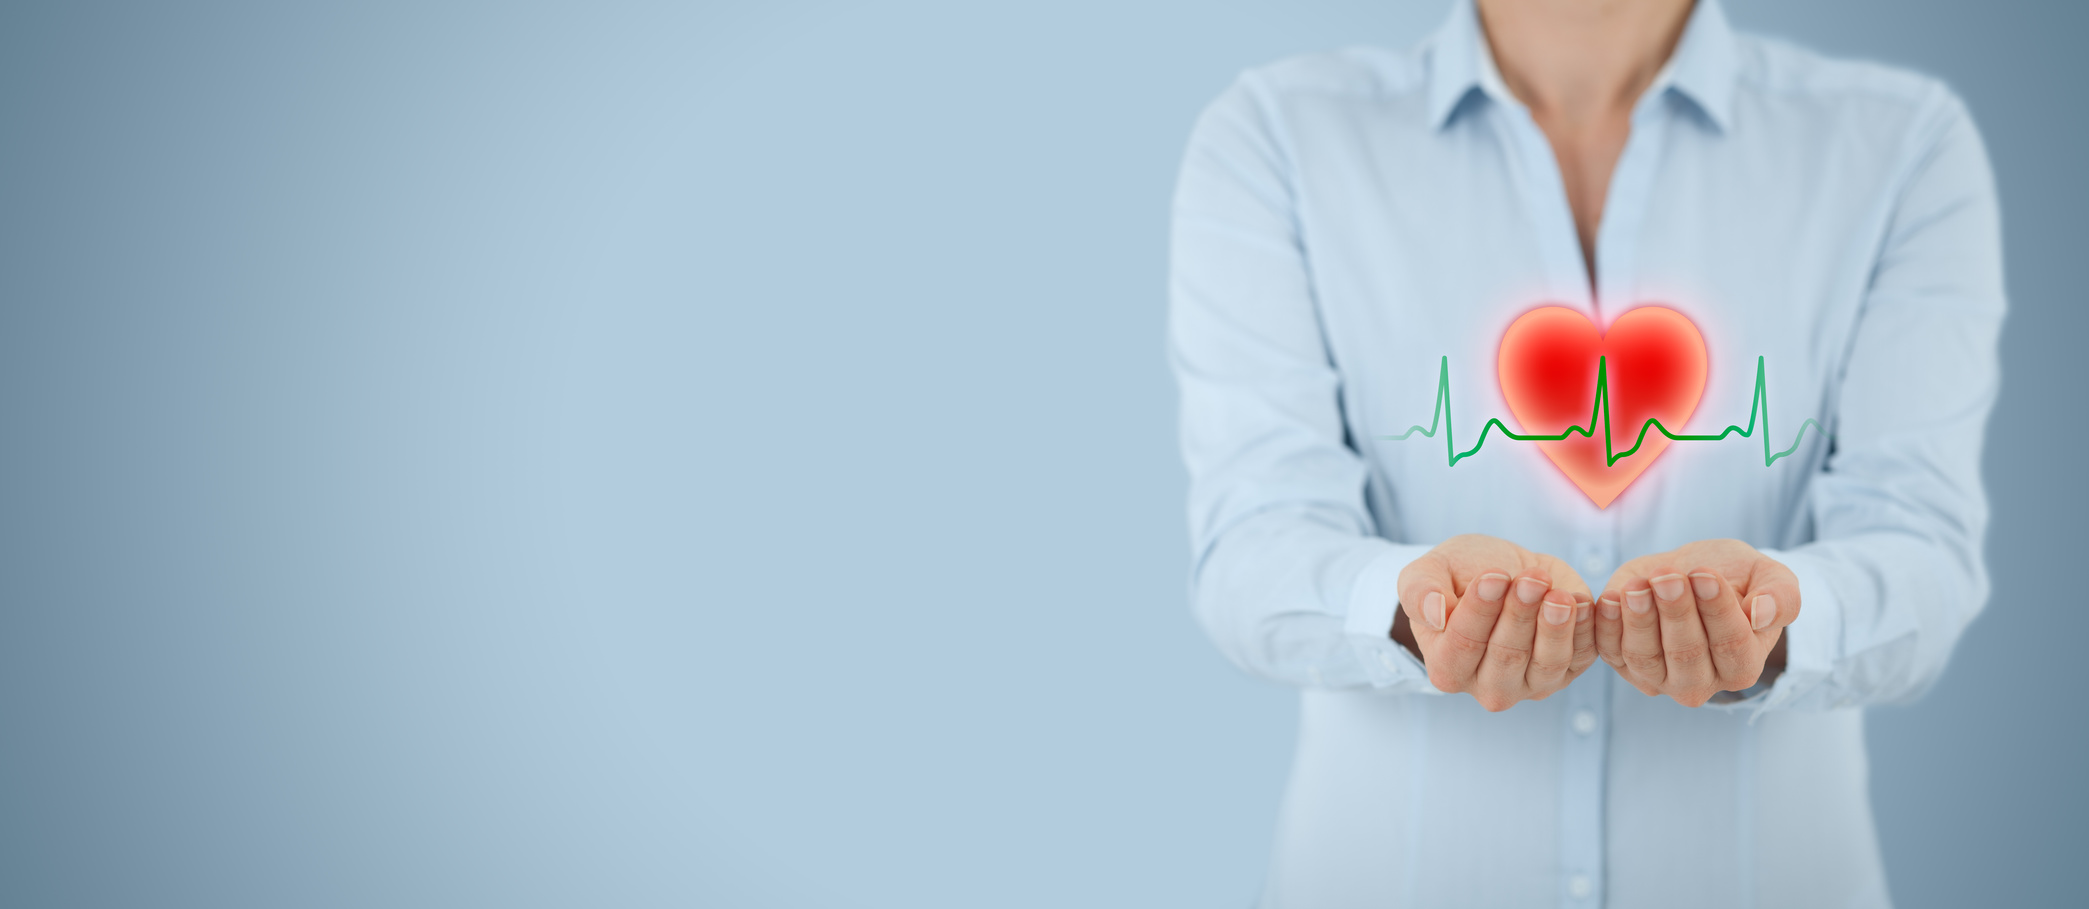 Protect health (healthcare) and heart problems prevention (cardiology) concept. Cardiologist with protective gesture and symbol of heart and ECG heartbeat, wide banner composition.